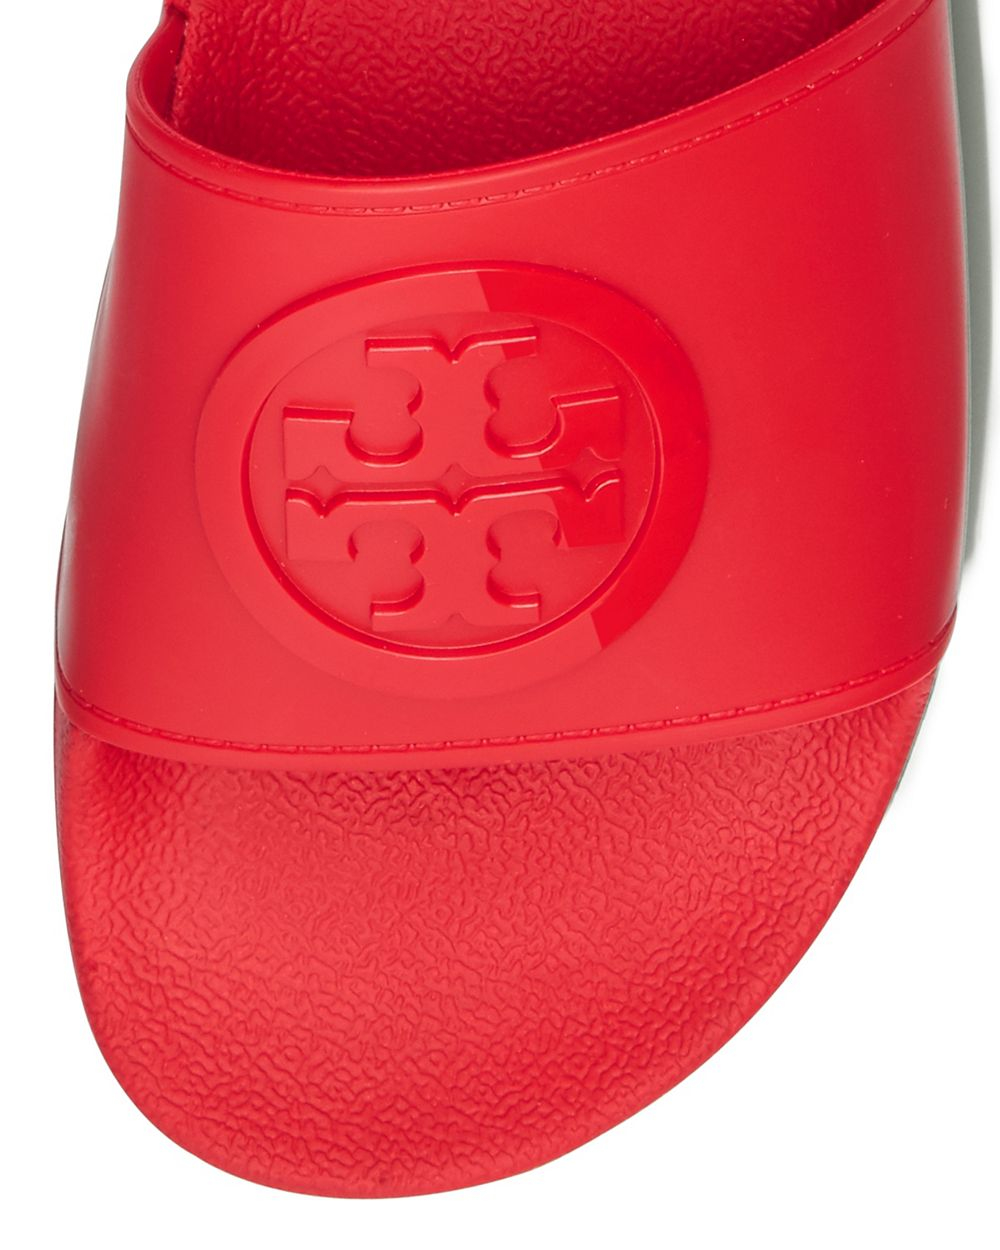 01702be73aa416 Tory Burch Logo Rubber Slides in Red - Lyst